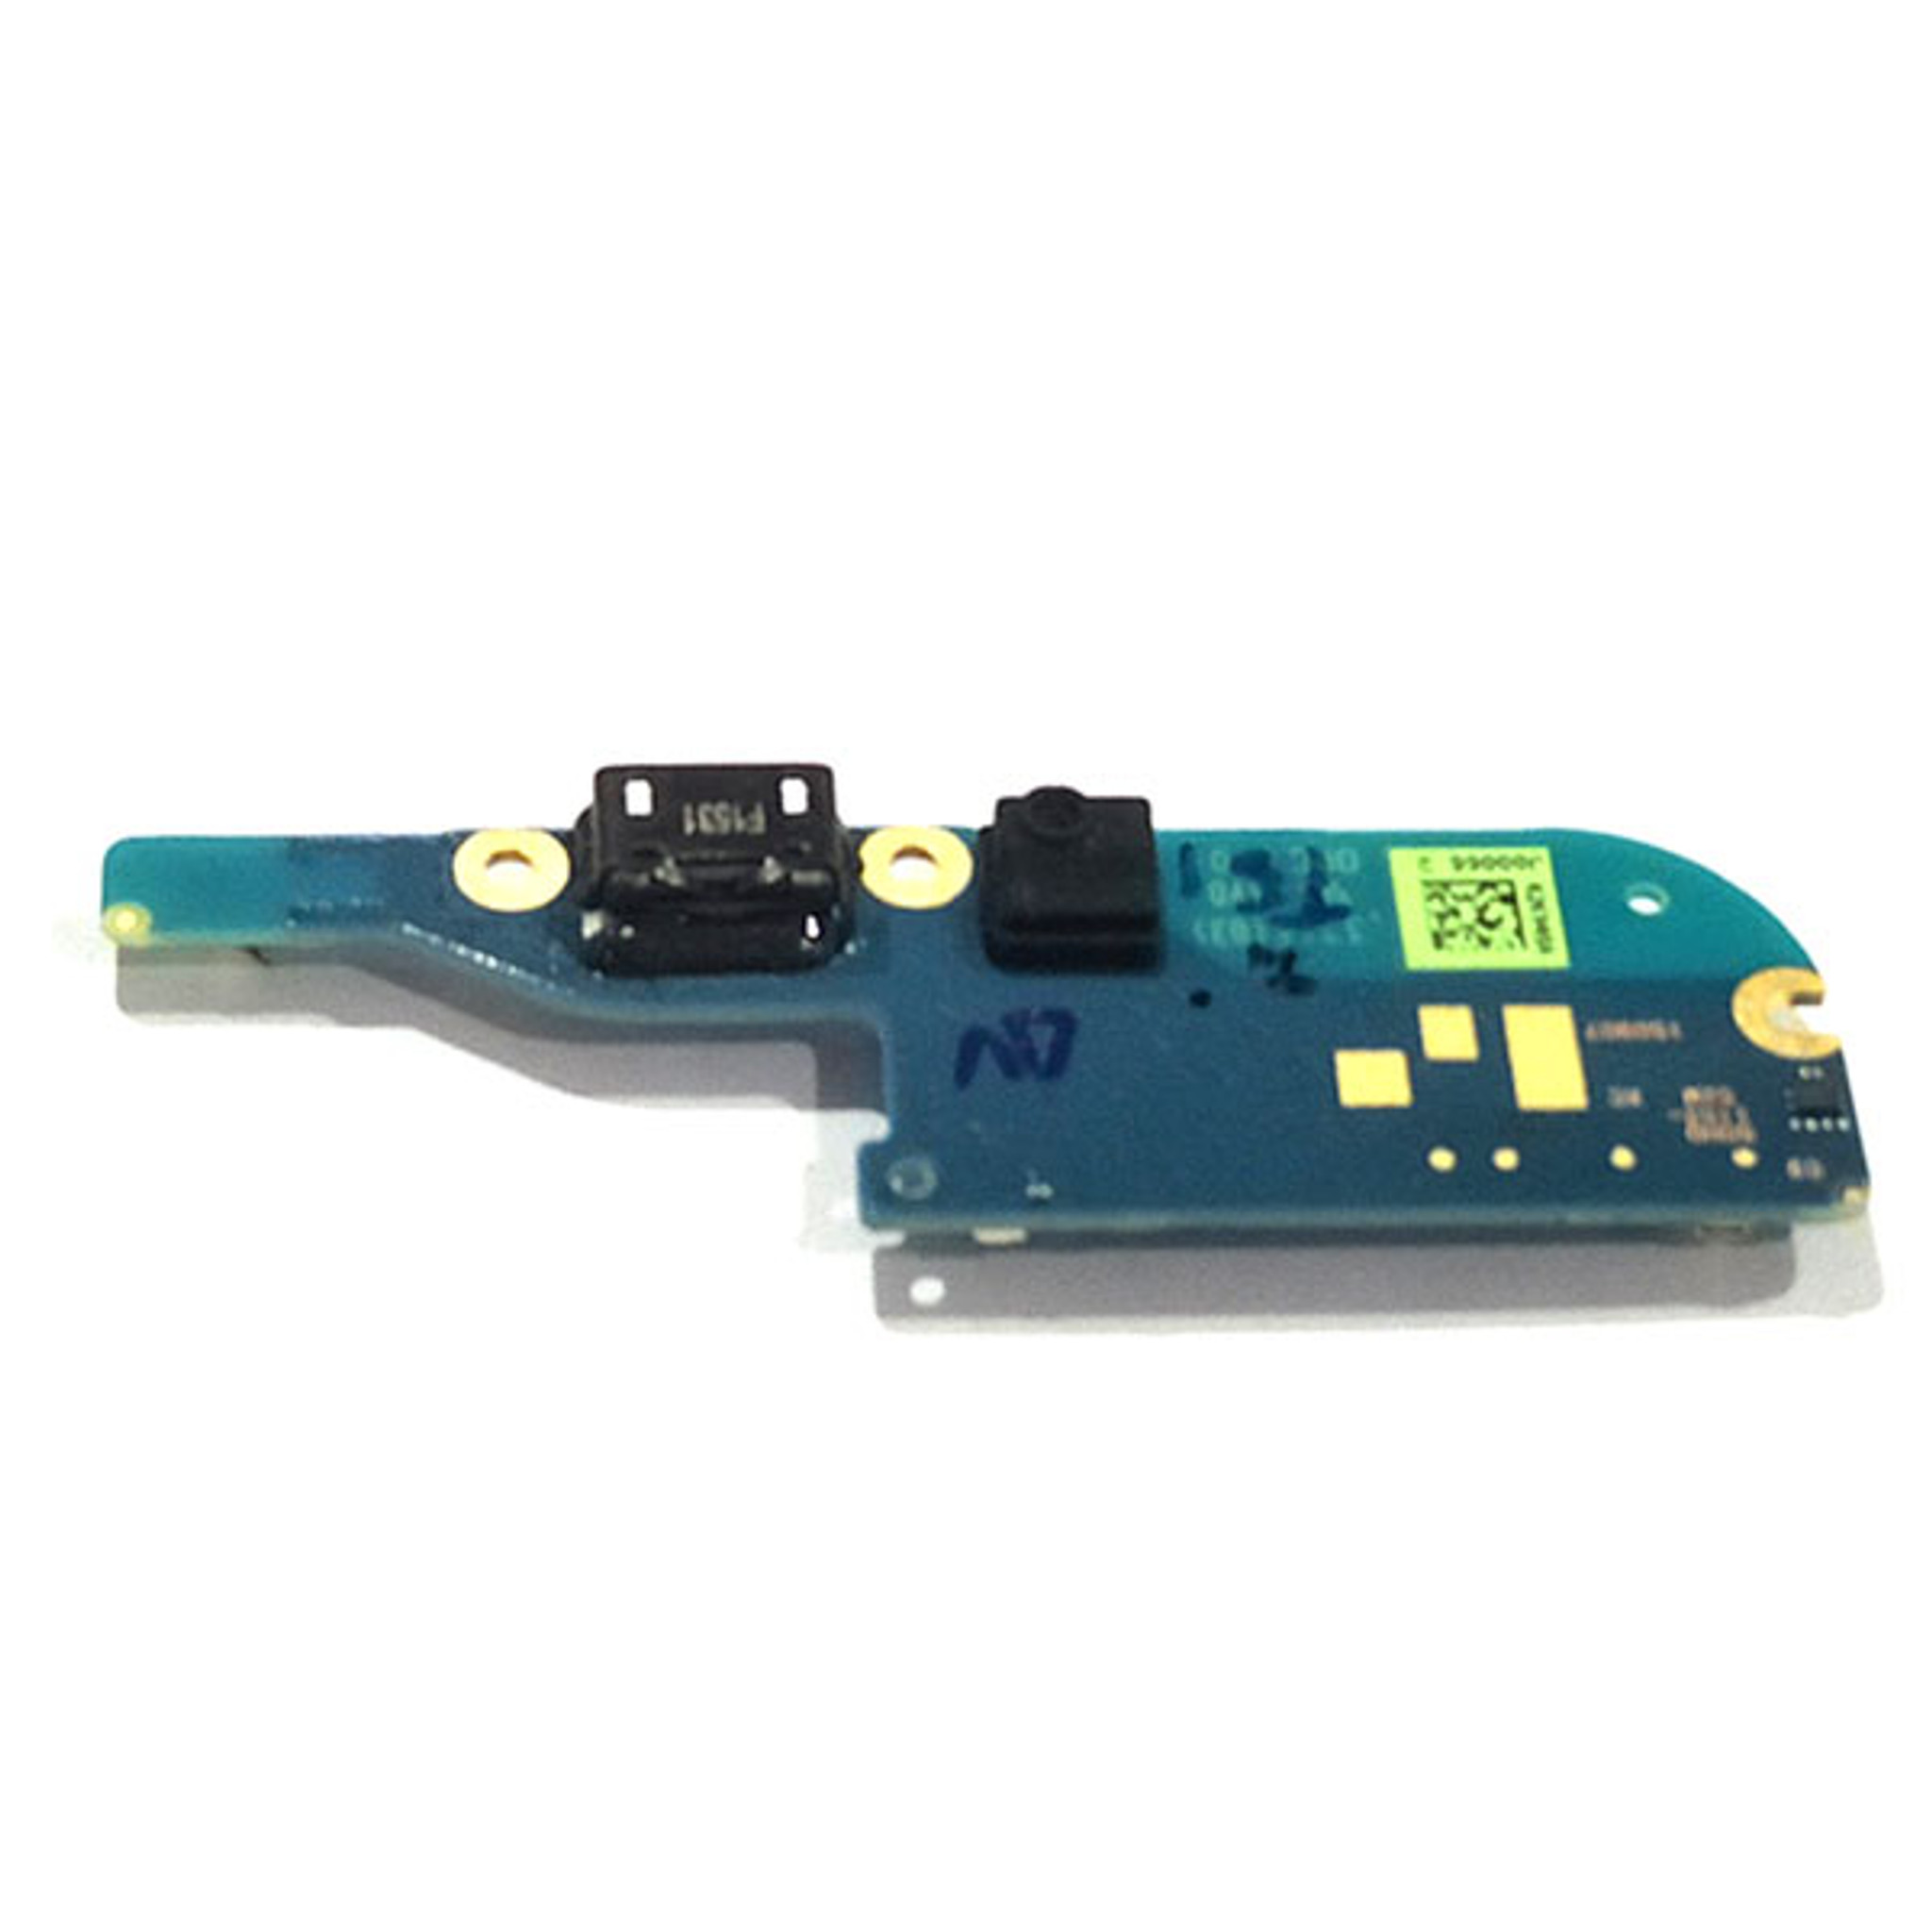 HTC One X9 Dock Charging PCB Board with Tools